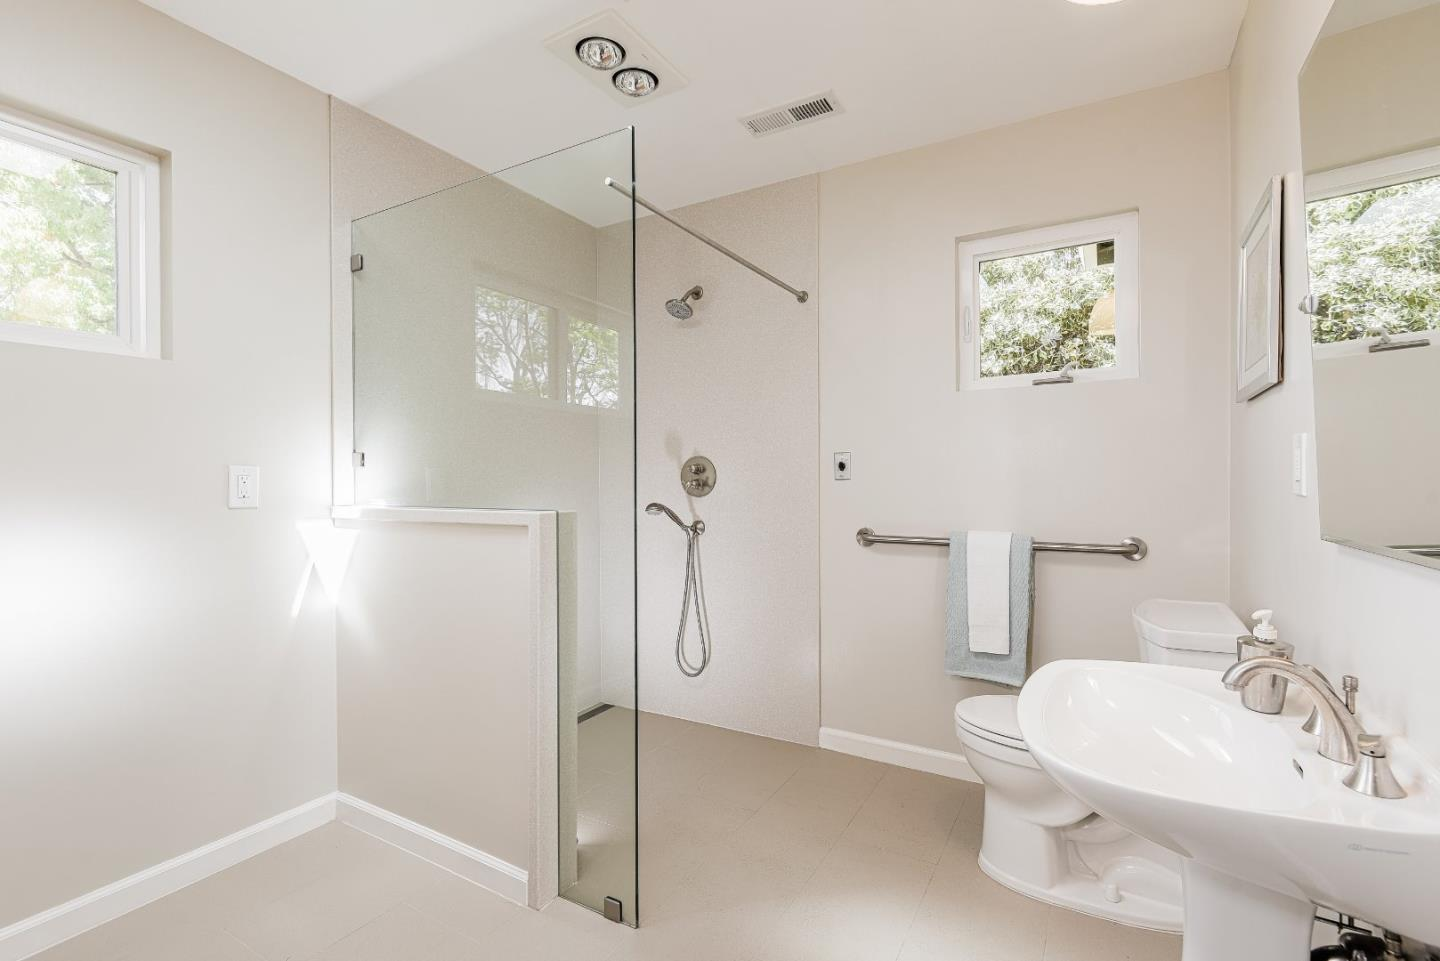 Additional photo for property listing at 1067 Brighton Place  MOUNTAIN VIEW, CALIFORNIA 94040